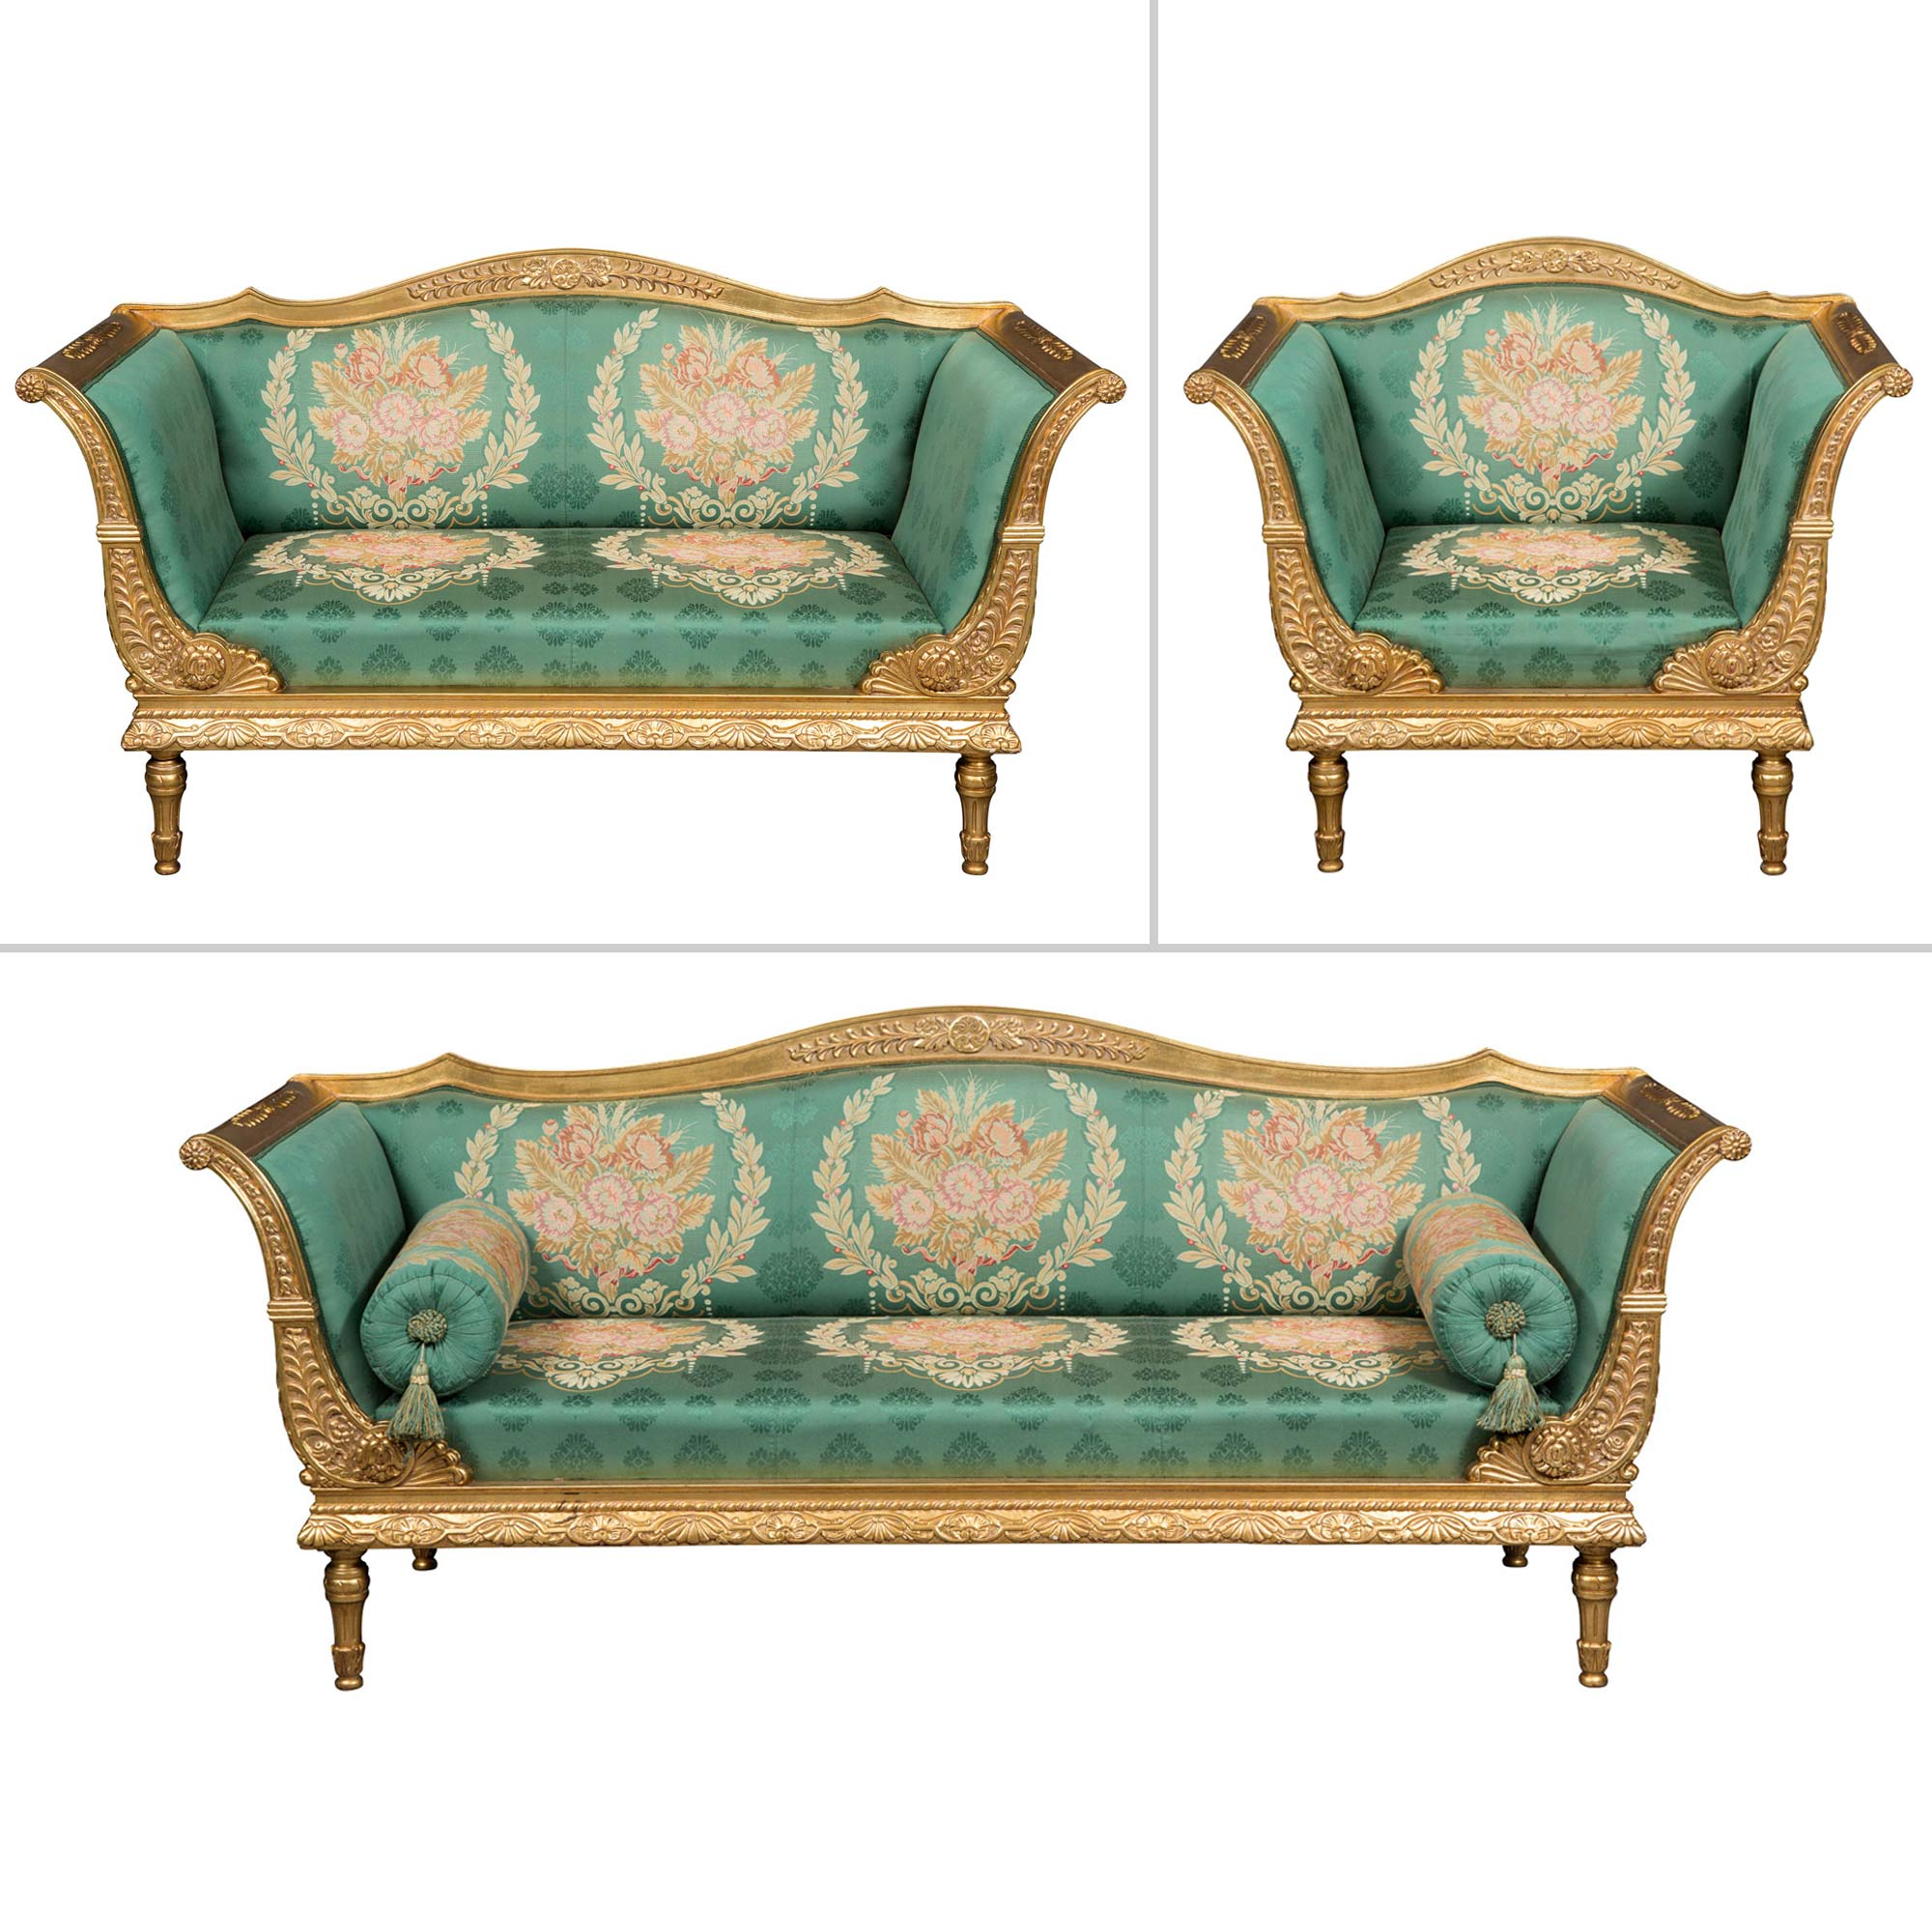 Lot image - Suite of Empire Style Giltwood Seating Furniture